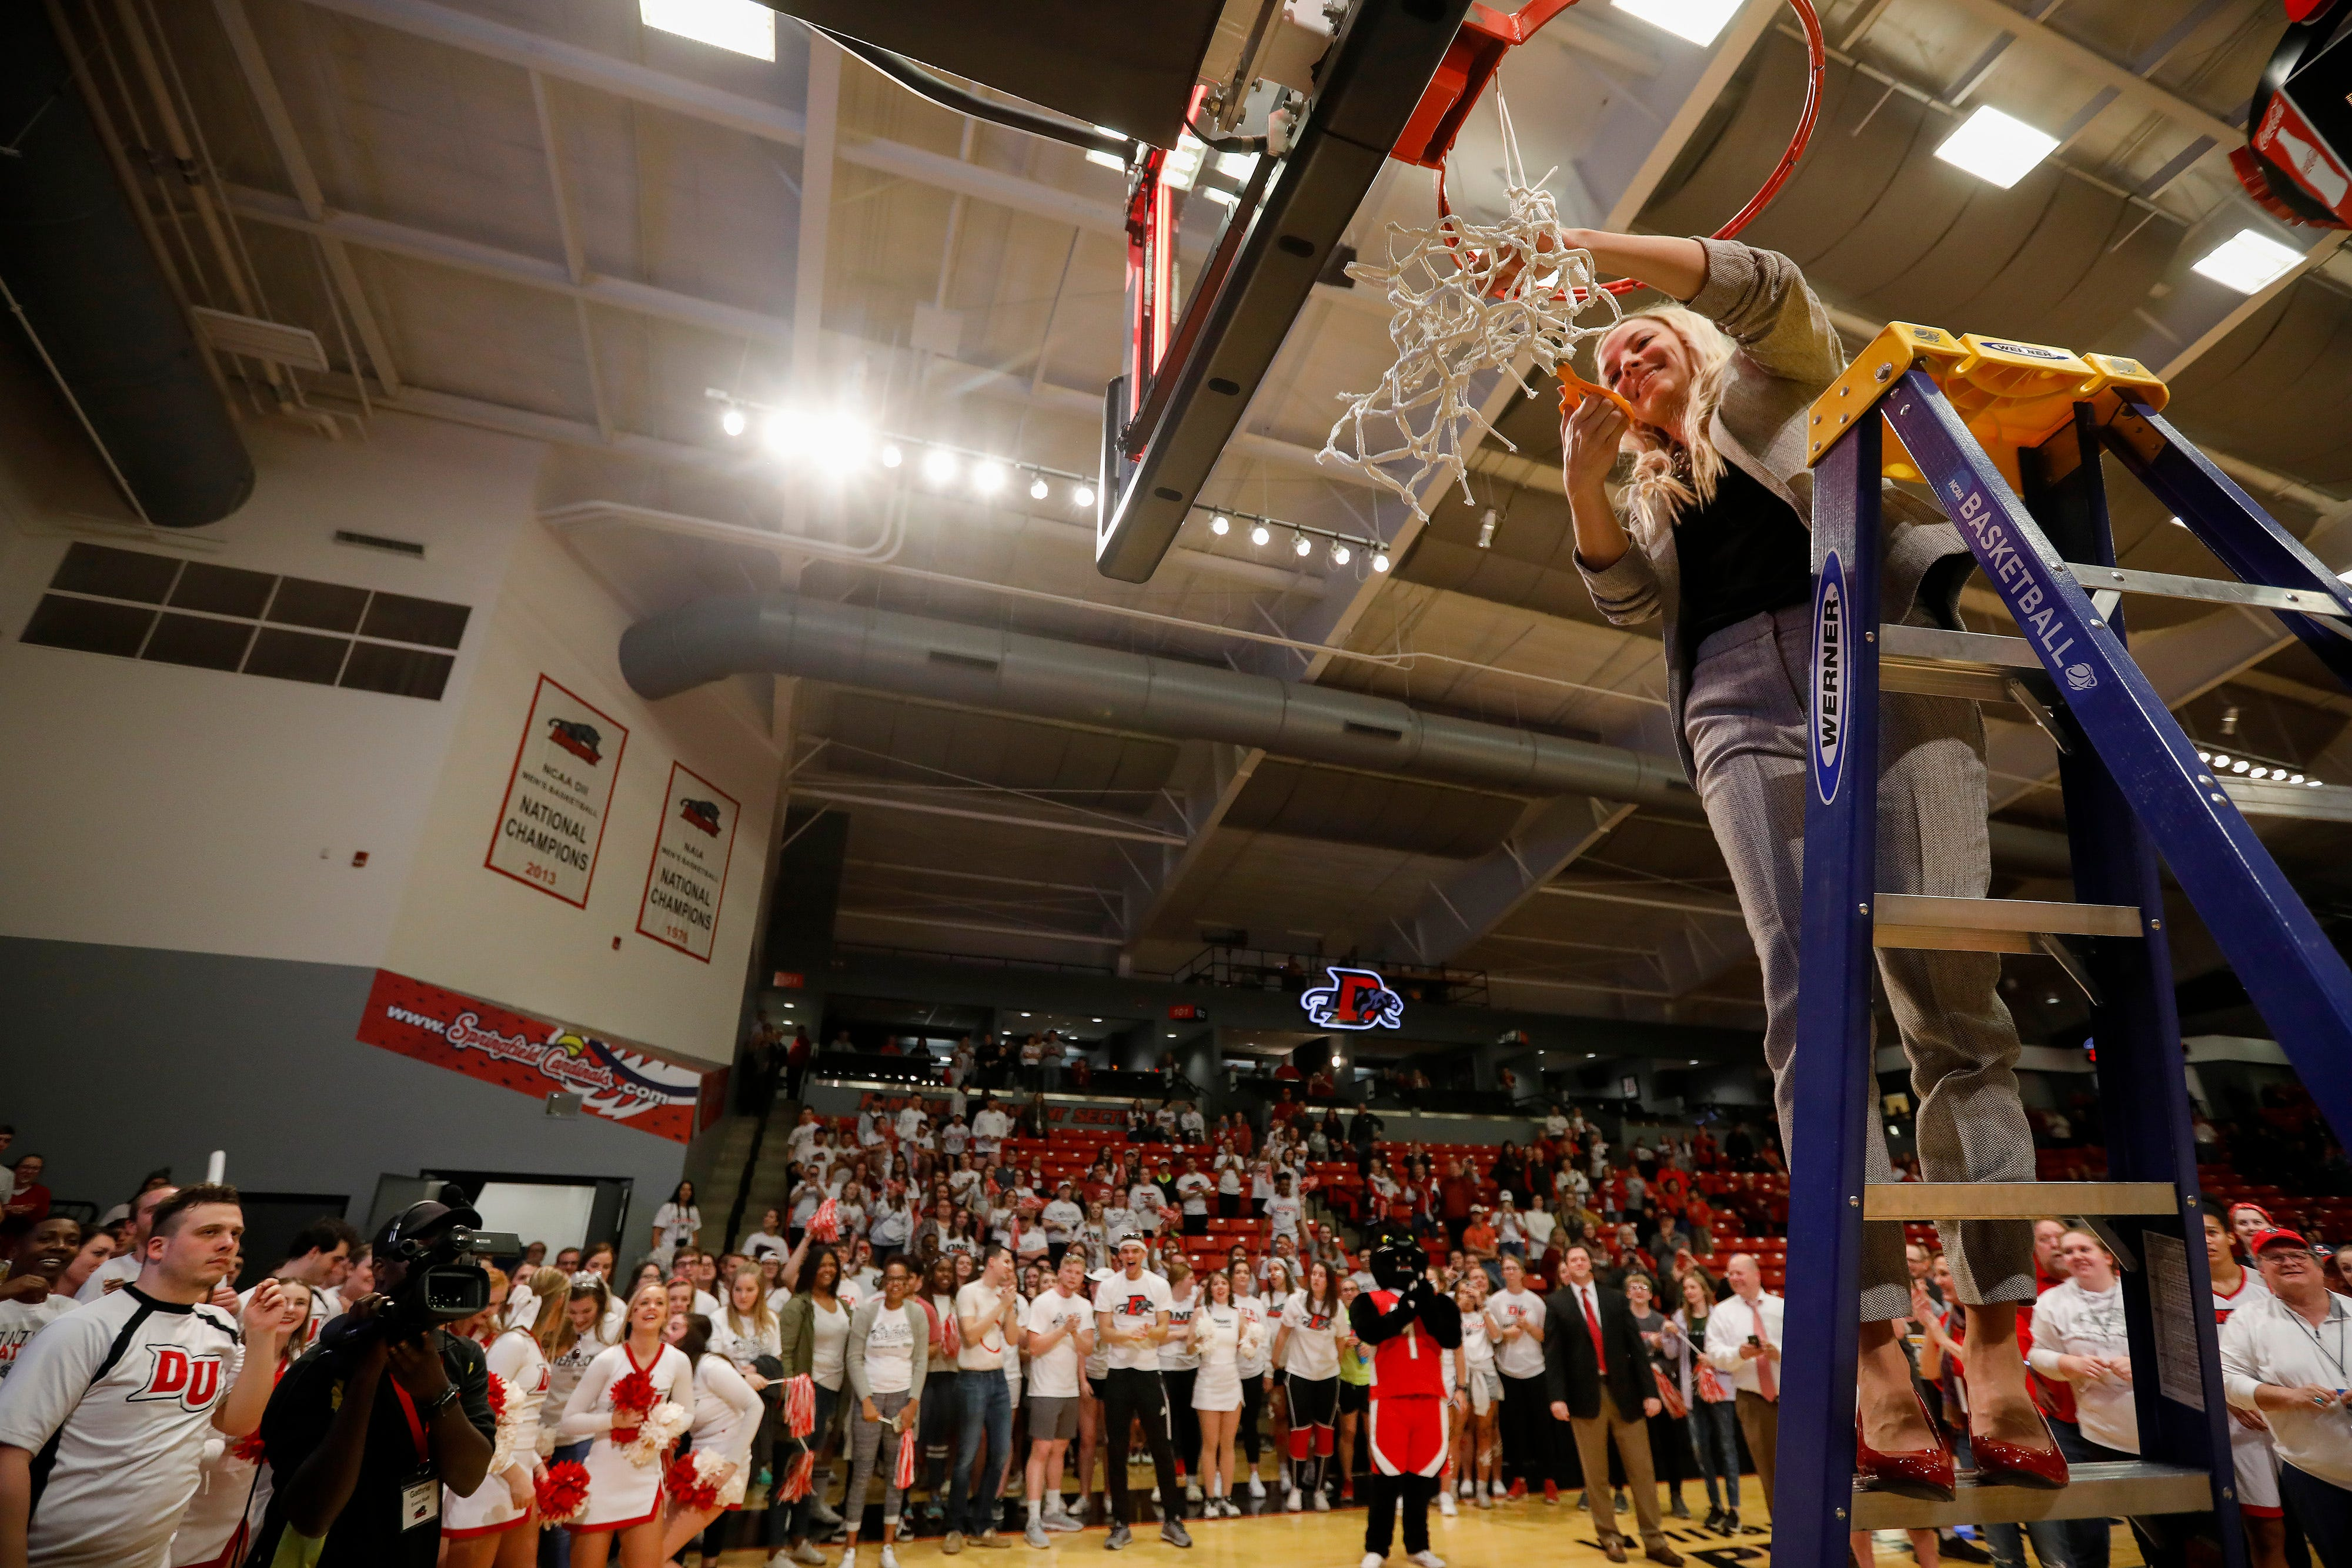 Drury head coach Molly Miller cuts down the net after winning the NCAA Division II Midwest Regional Championship game 51-44 over Grand Valley at the O'Reilly Family Event Center on Monday, March 18, 2019.